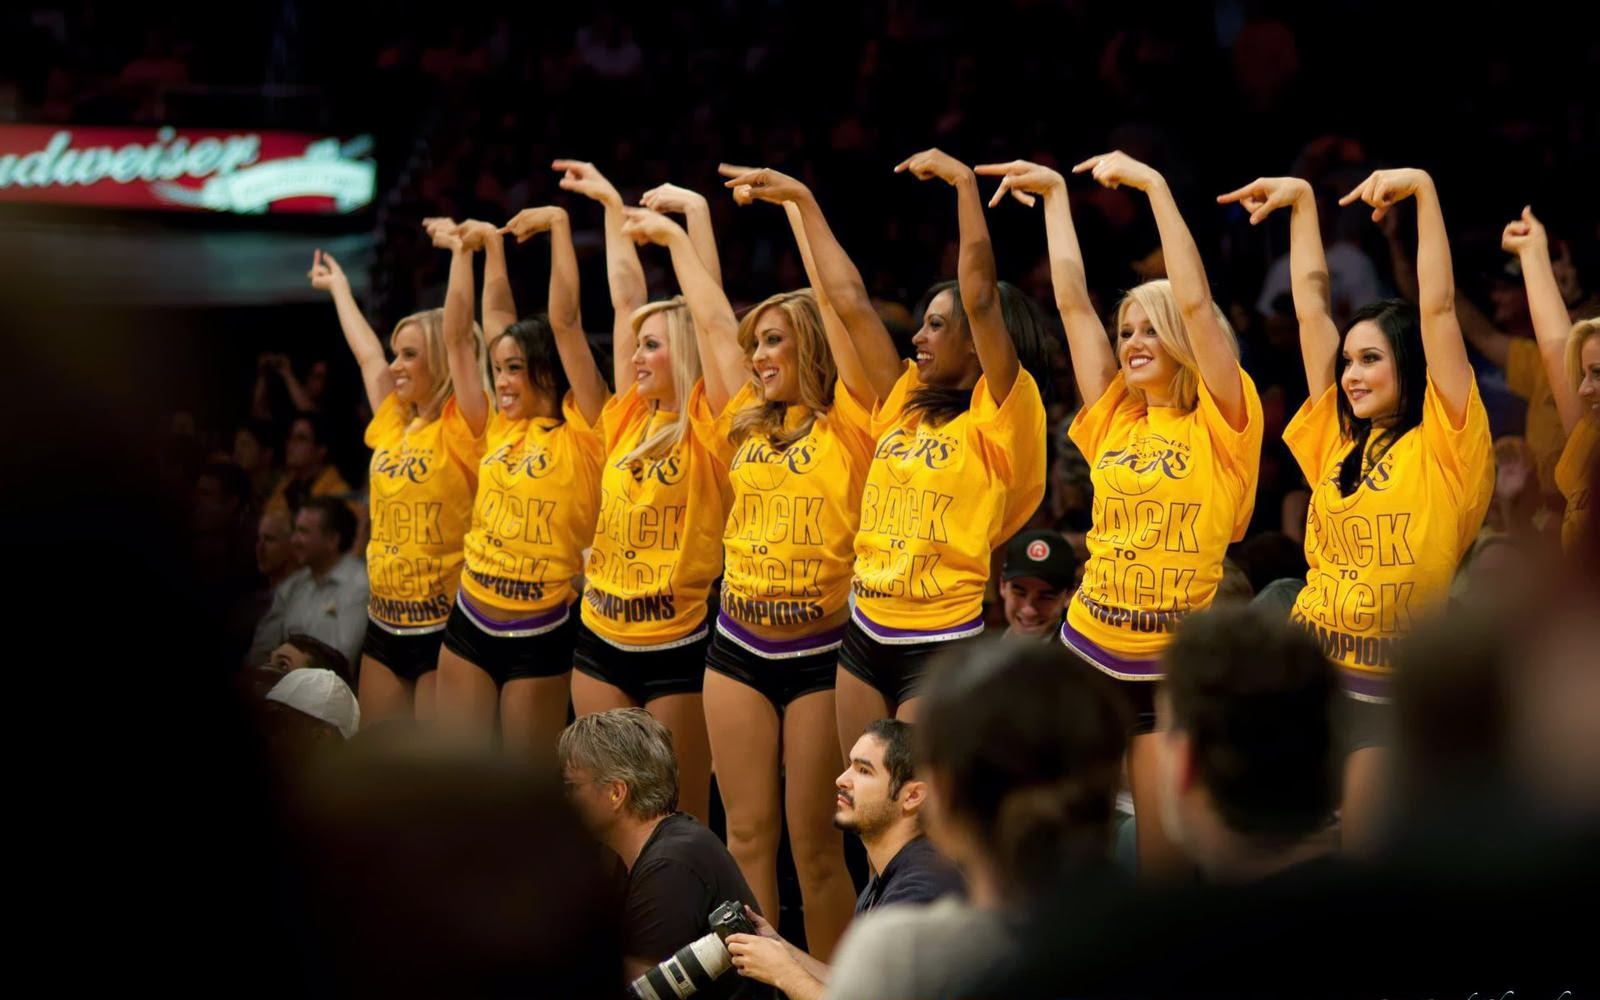 Lakers Wallpaper Picture Image Photo   lakers wallpaper picture image 1600x1000